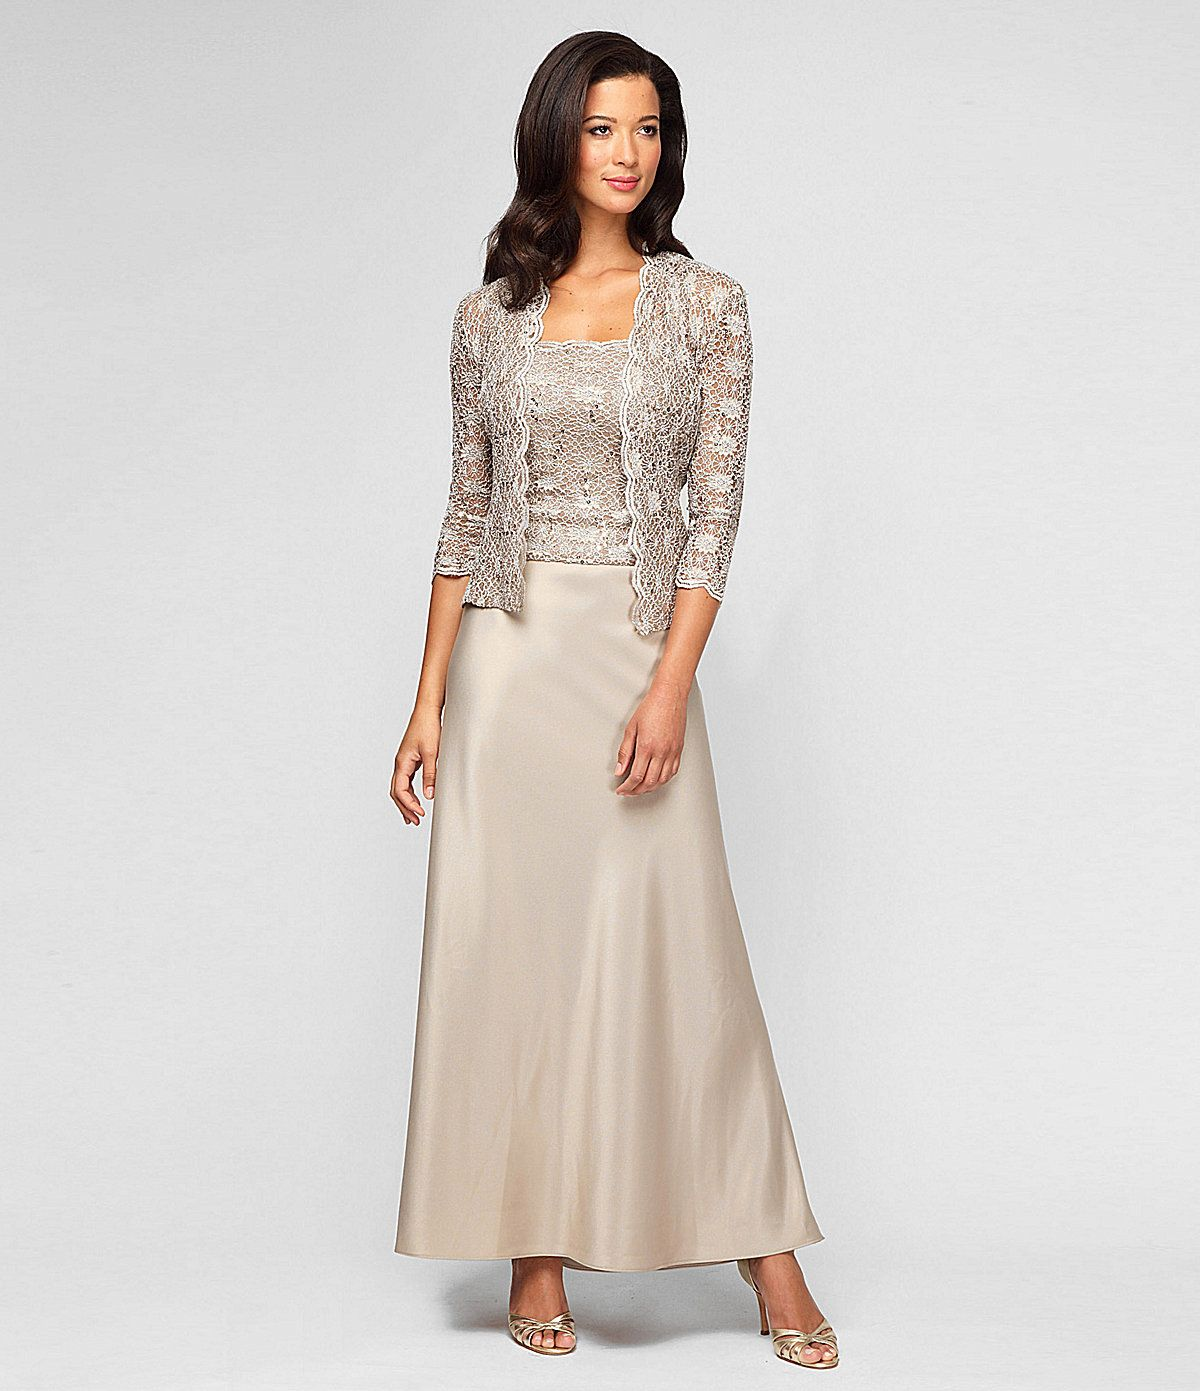 Mother Of The Groom Gowns: $200 Alex Evenings Lace & Charmeuse Jacket Dress